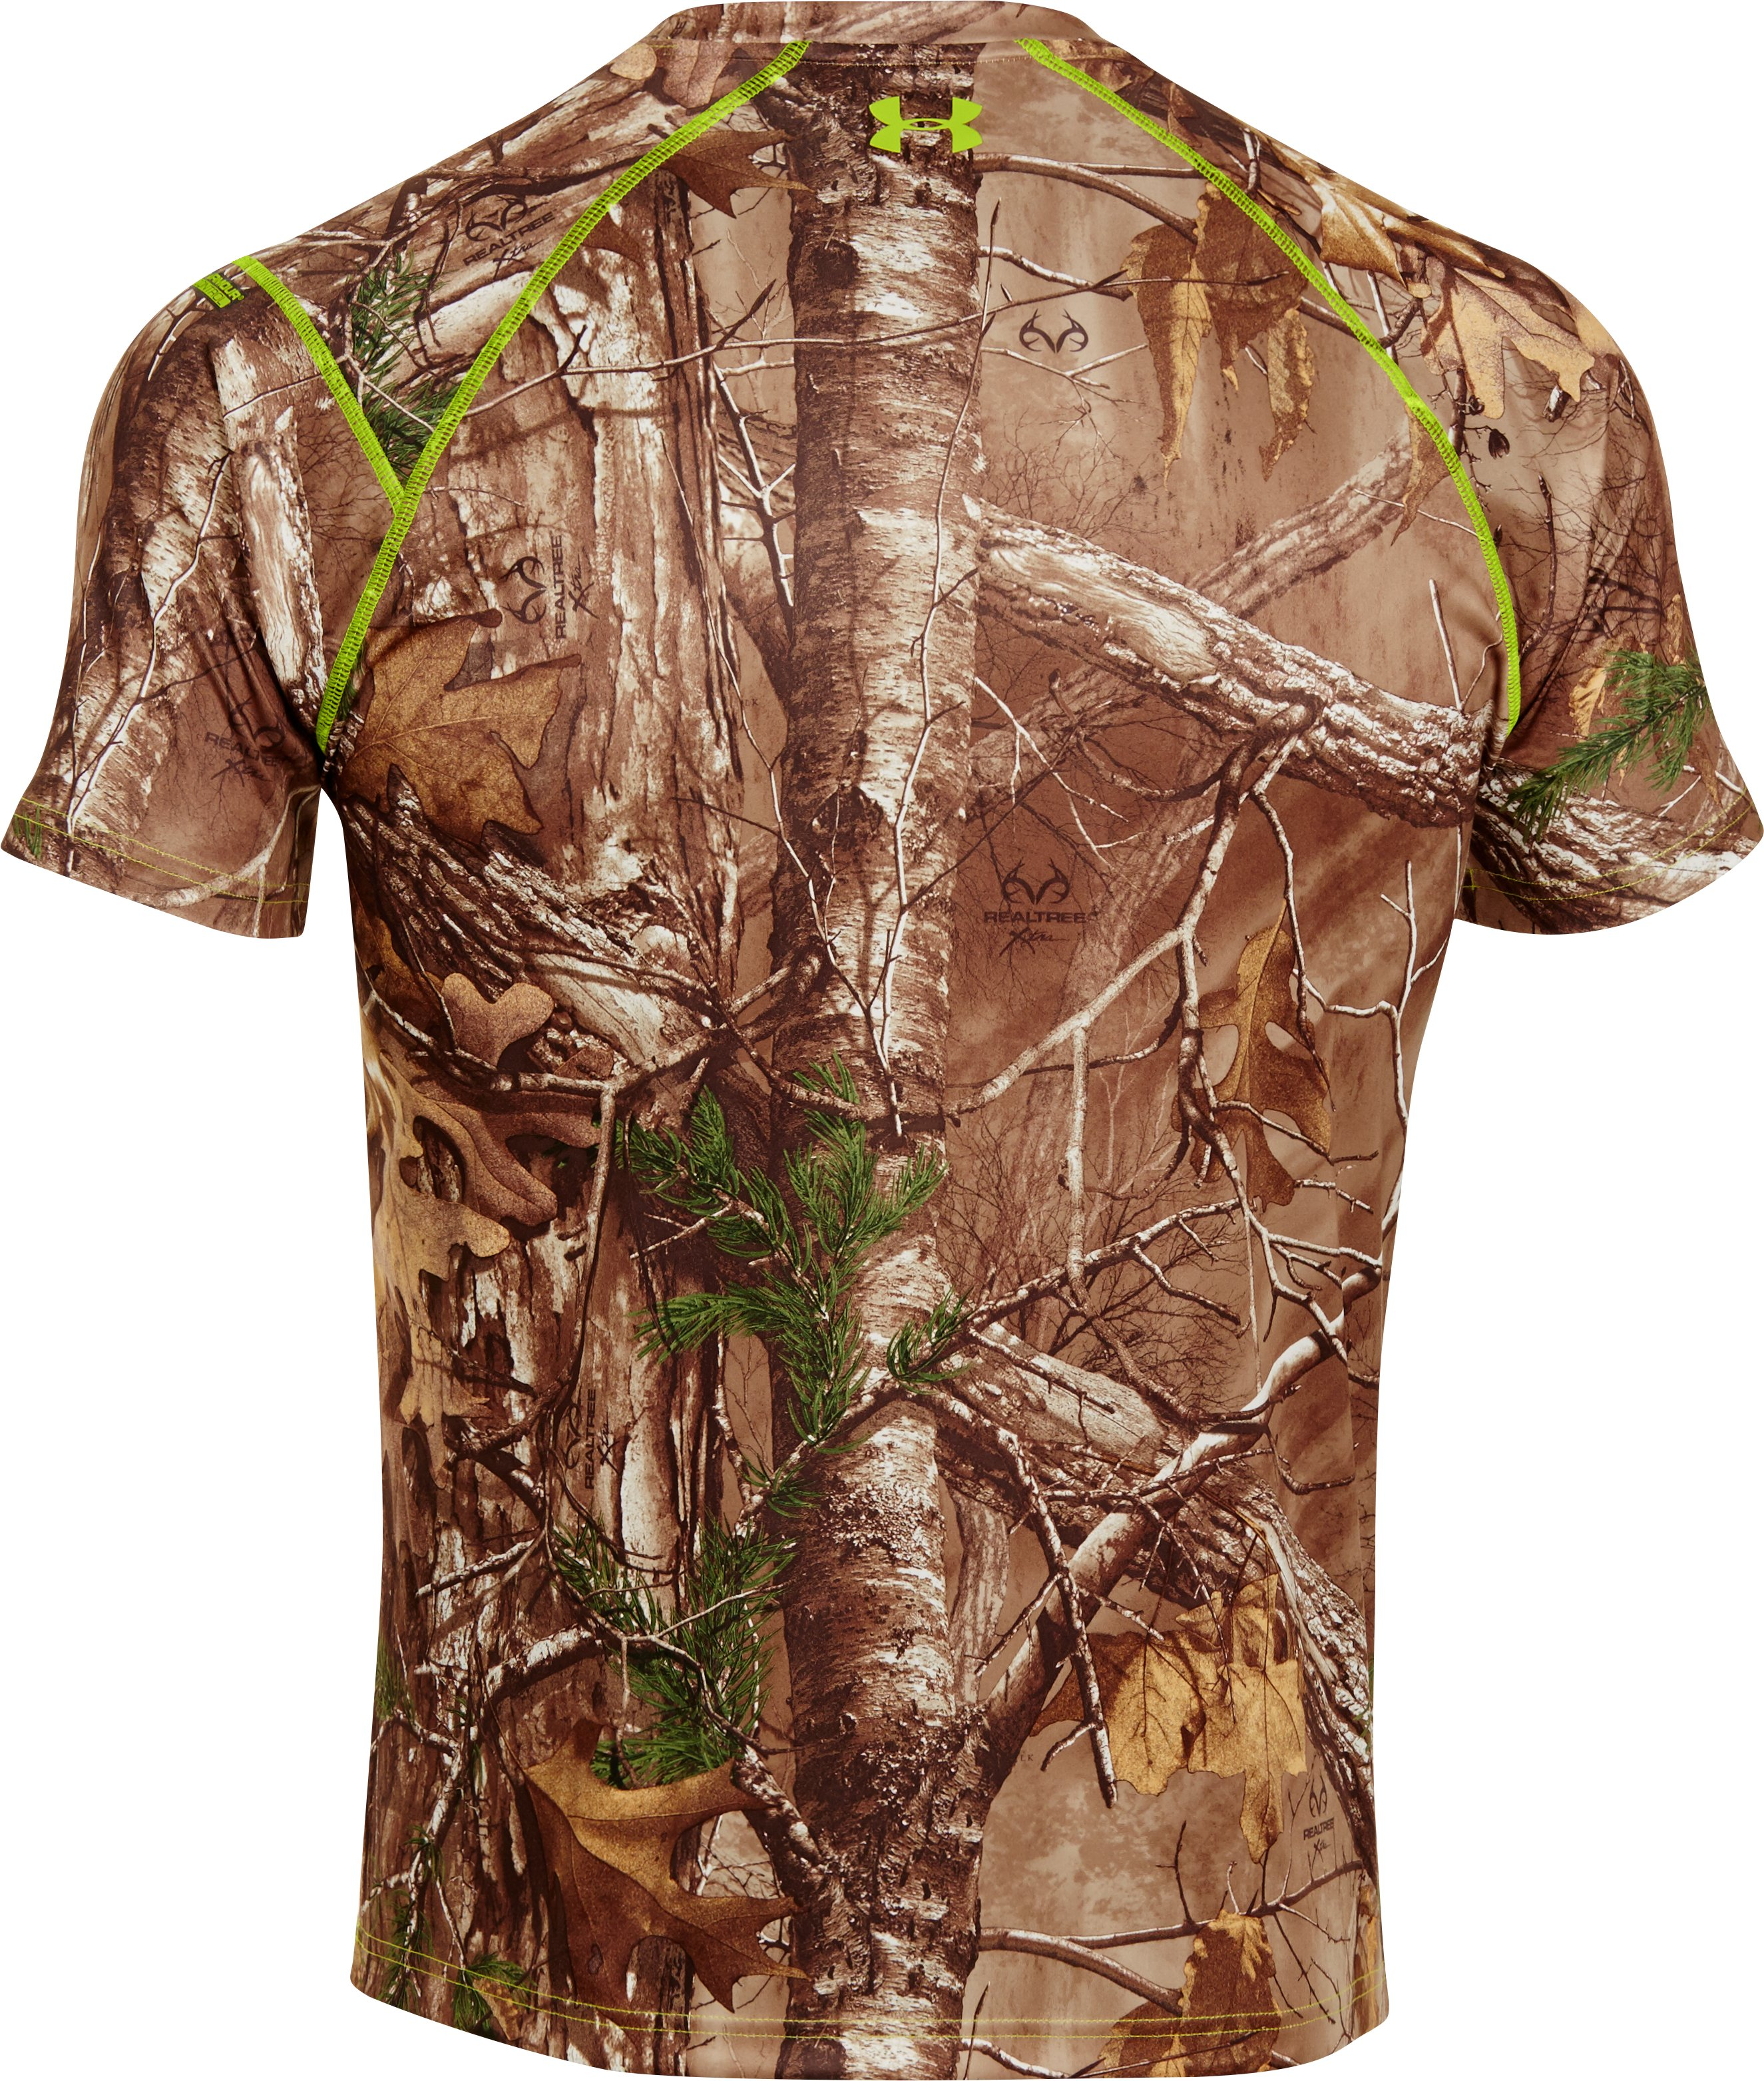 Men's HeatGear® Evo Scent Control Short Sleeve, REALTREE AP-XTRA